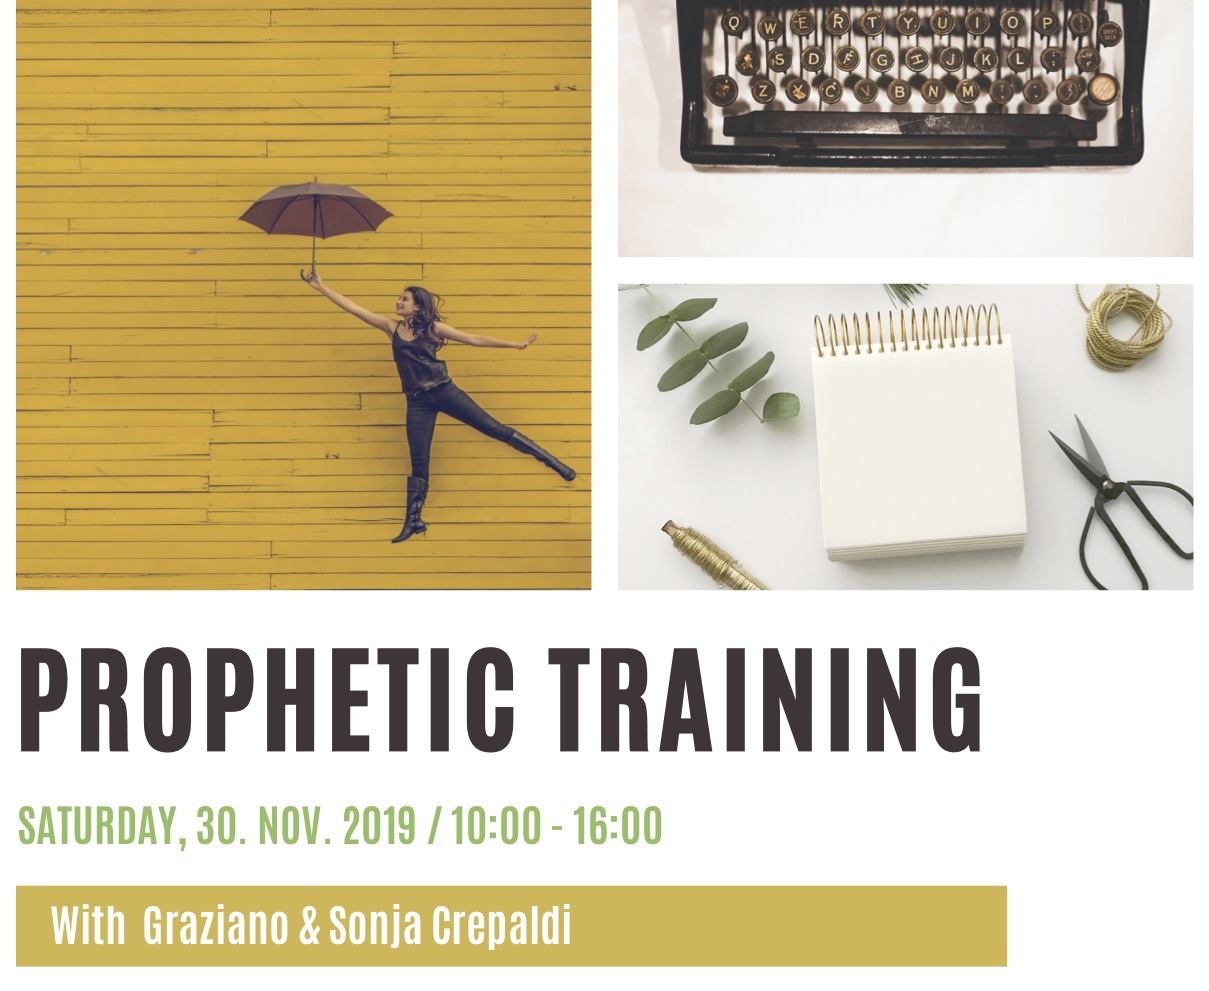 PROPHETIC TRAINING (30. November 2019)